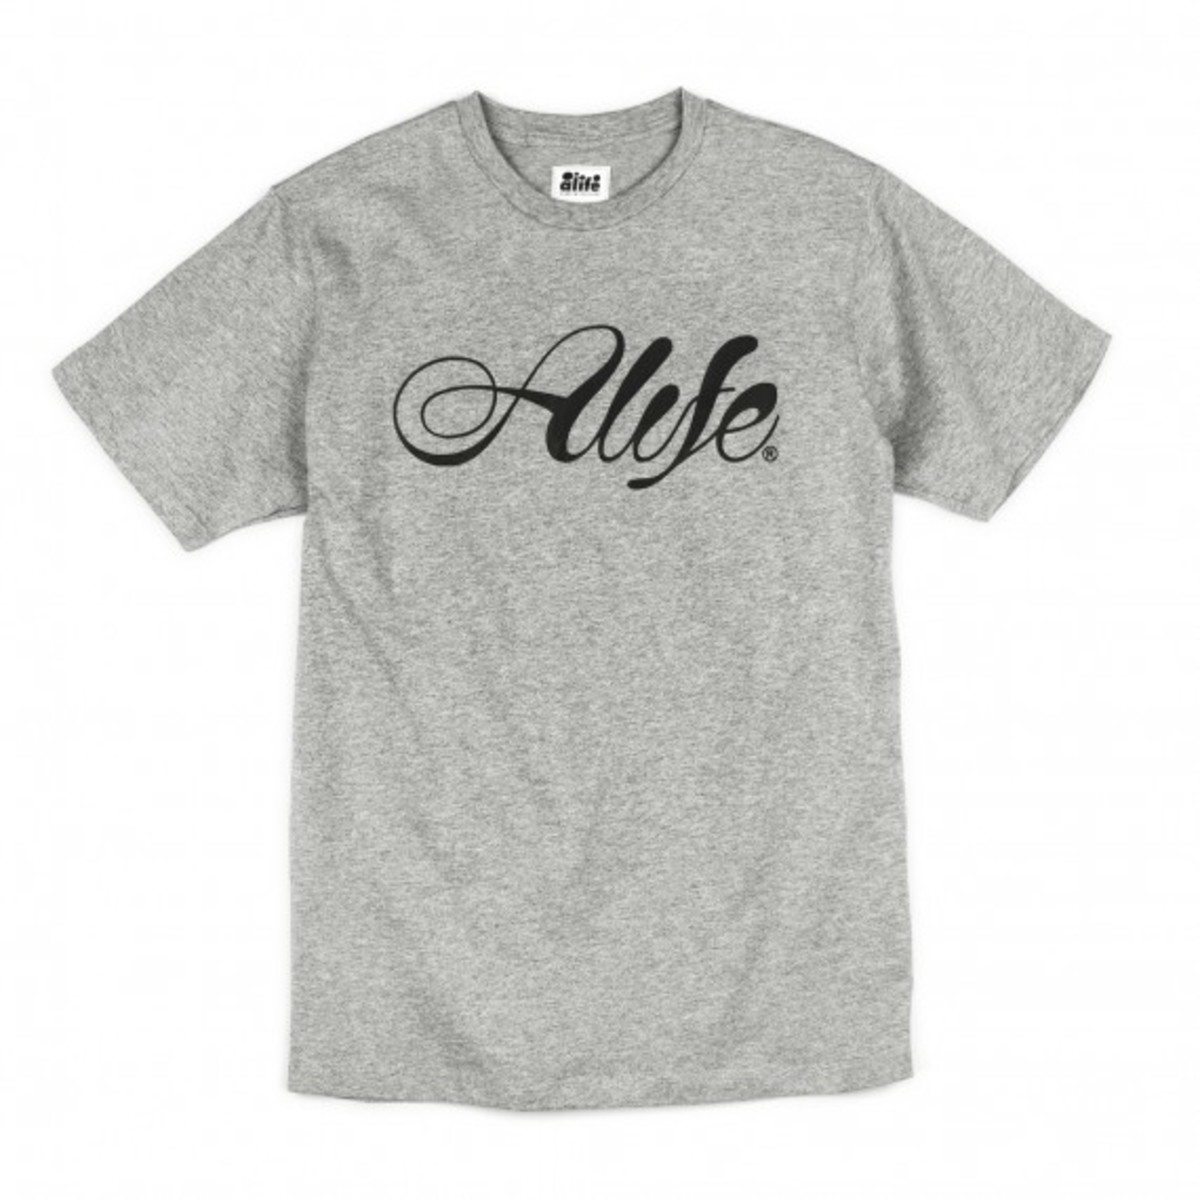 alife-tshirts-accessories-fall-2011-06